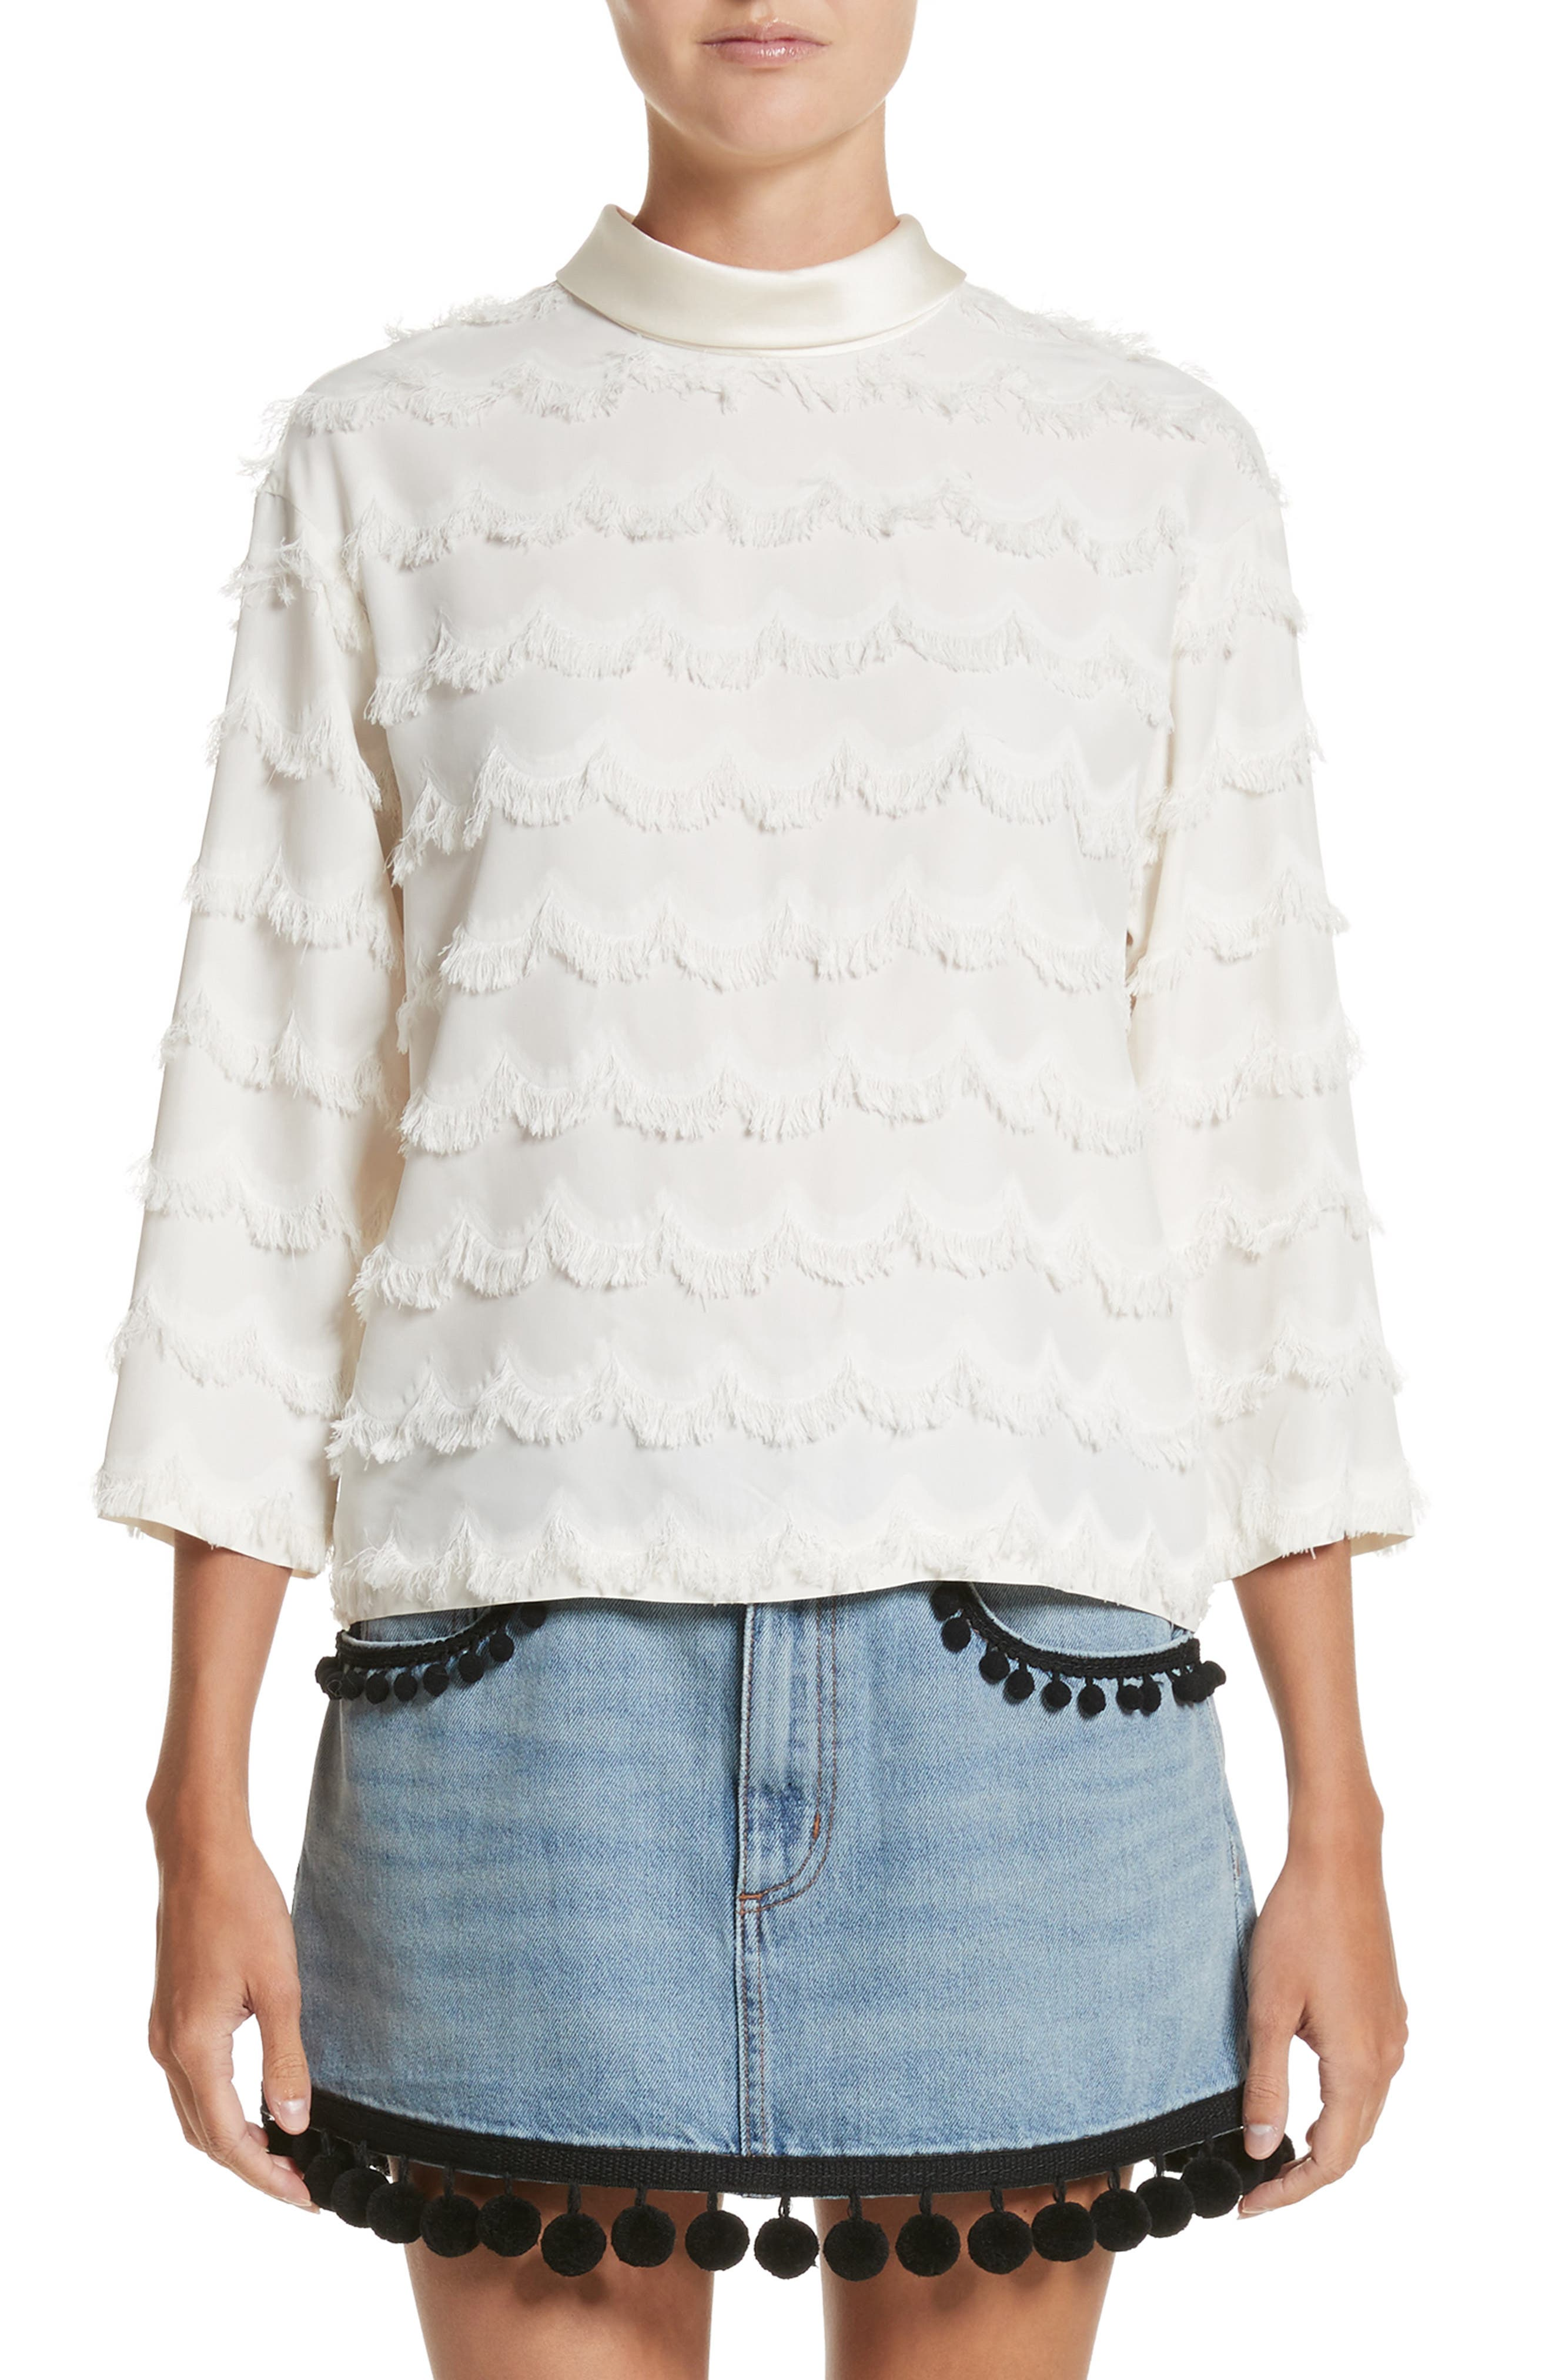 Main Image - MARC JACOBS Scalloped Fringe Top